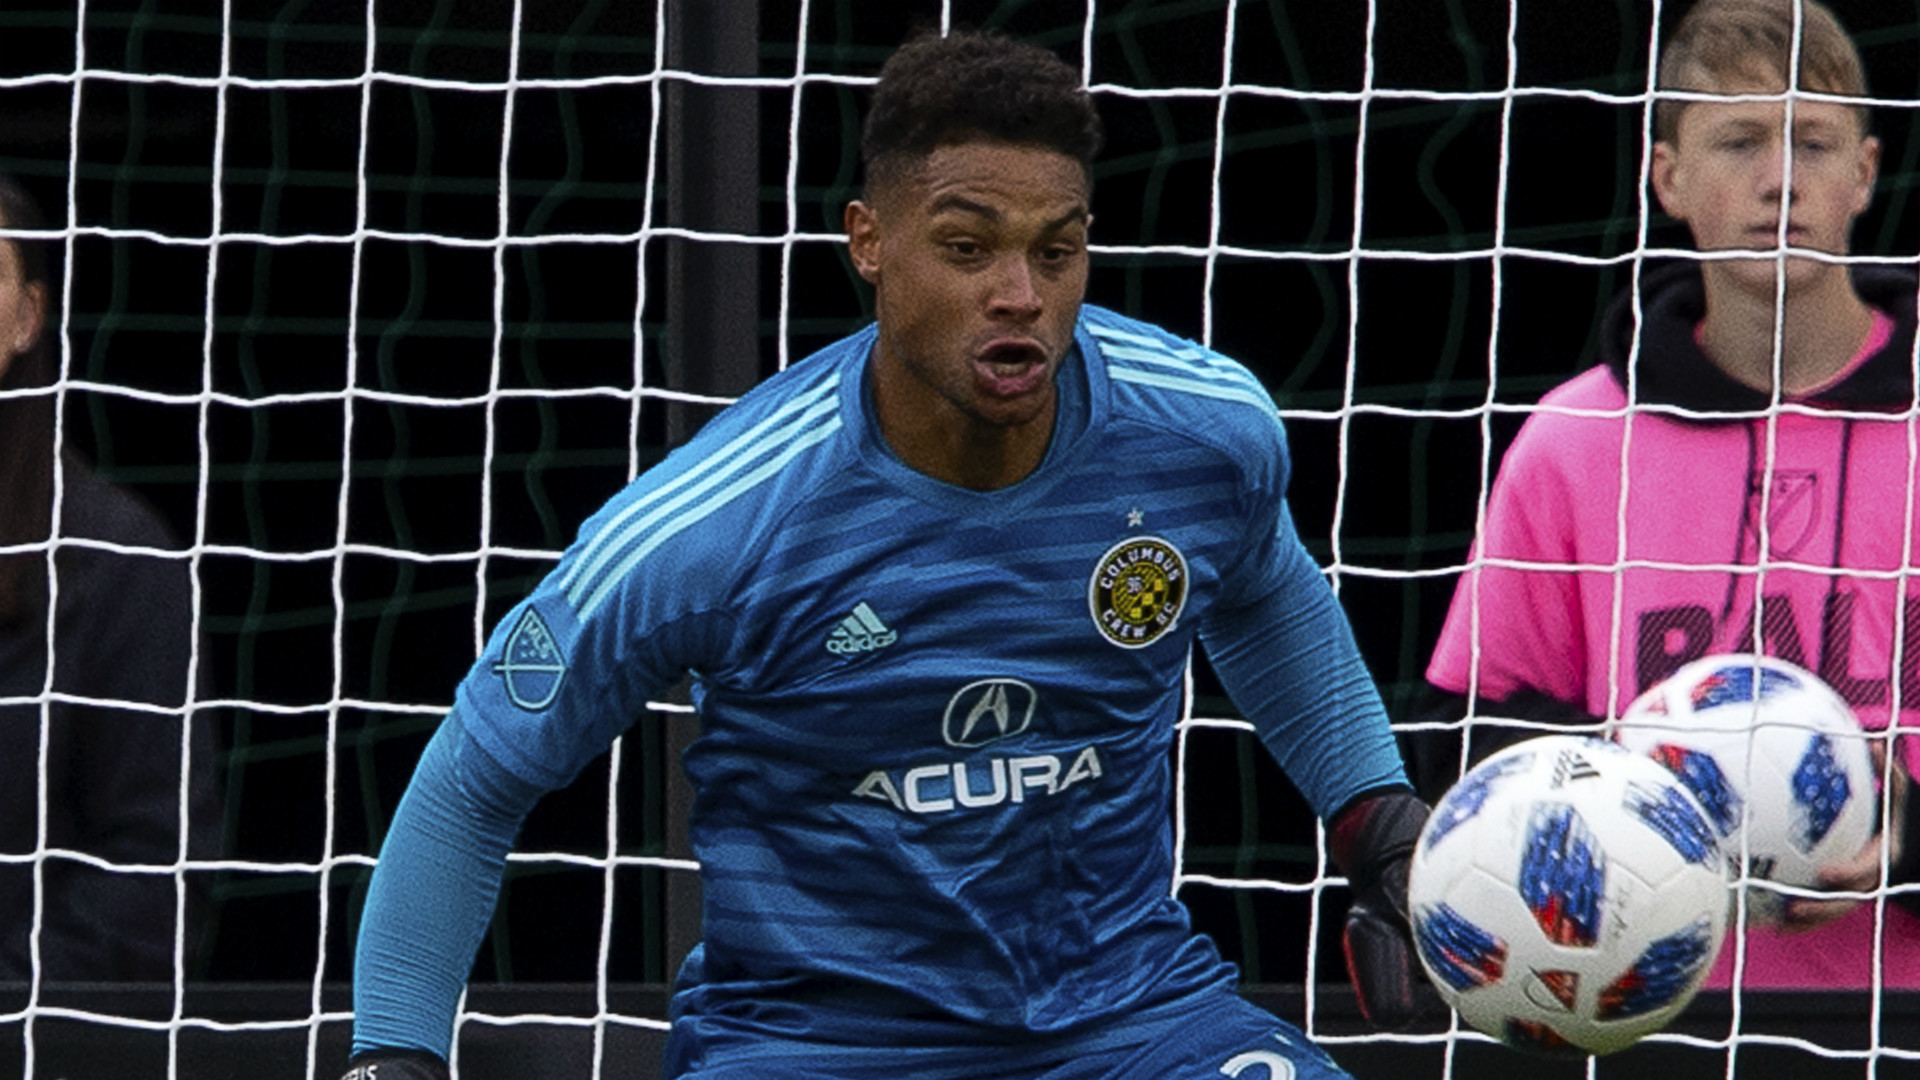 Manchester City closing in on £7m deal for US goalkeeper Zack Steffen